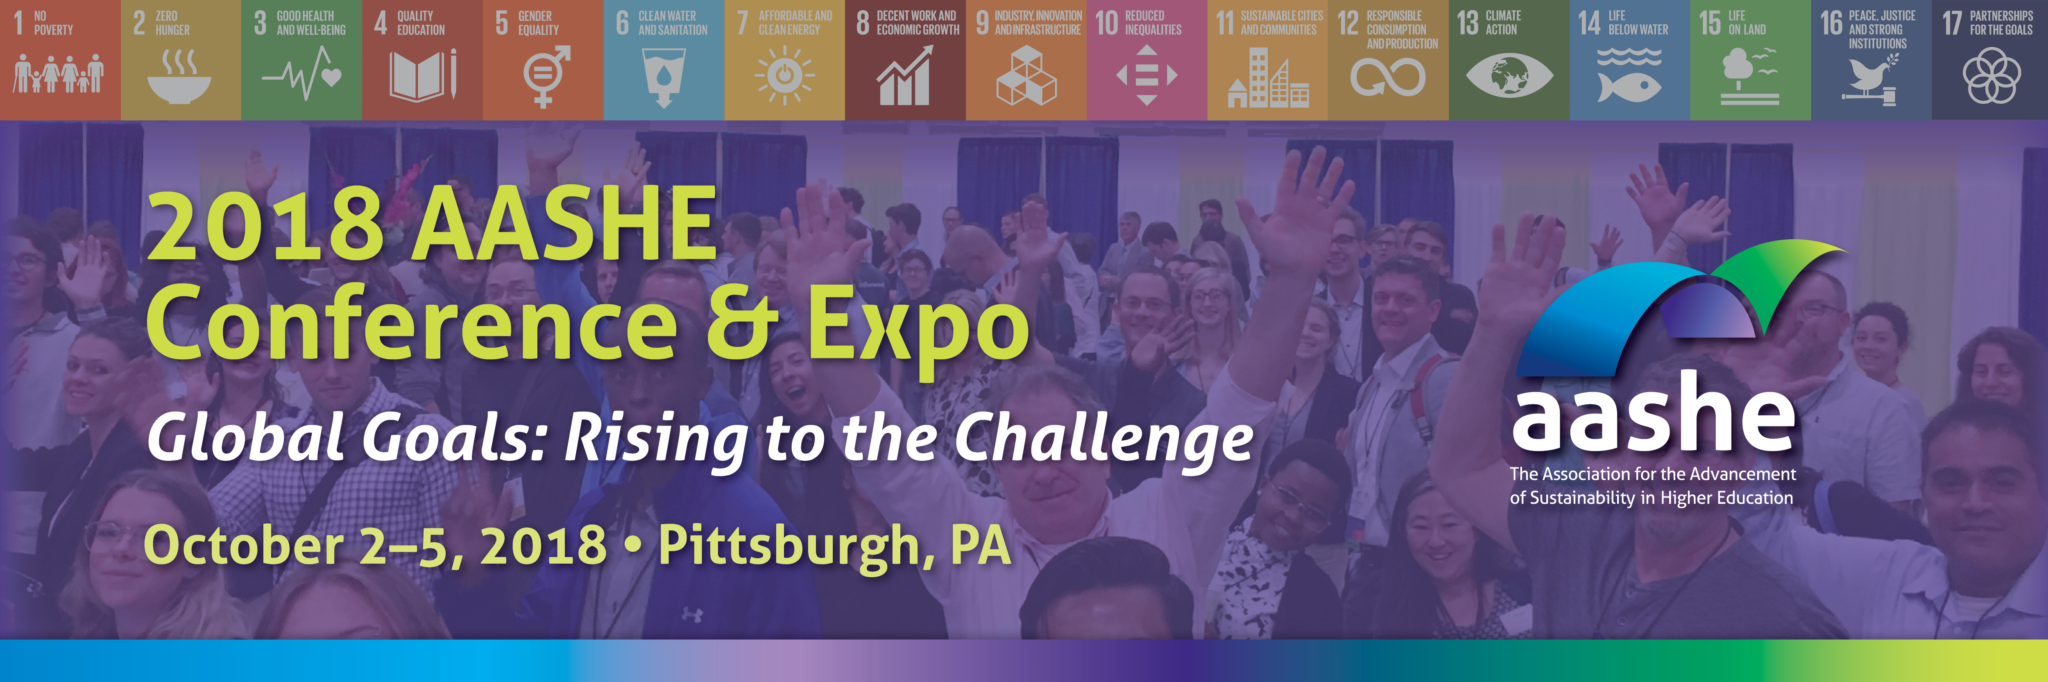 AASHE 2018 Conference & Expo